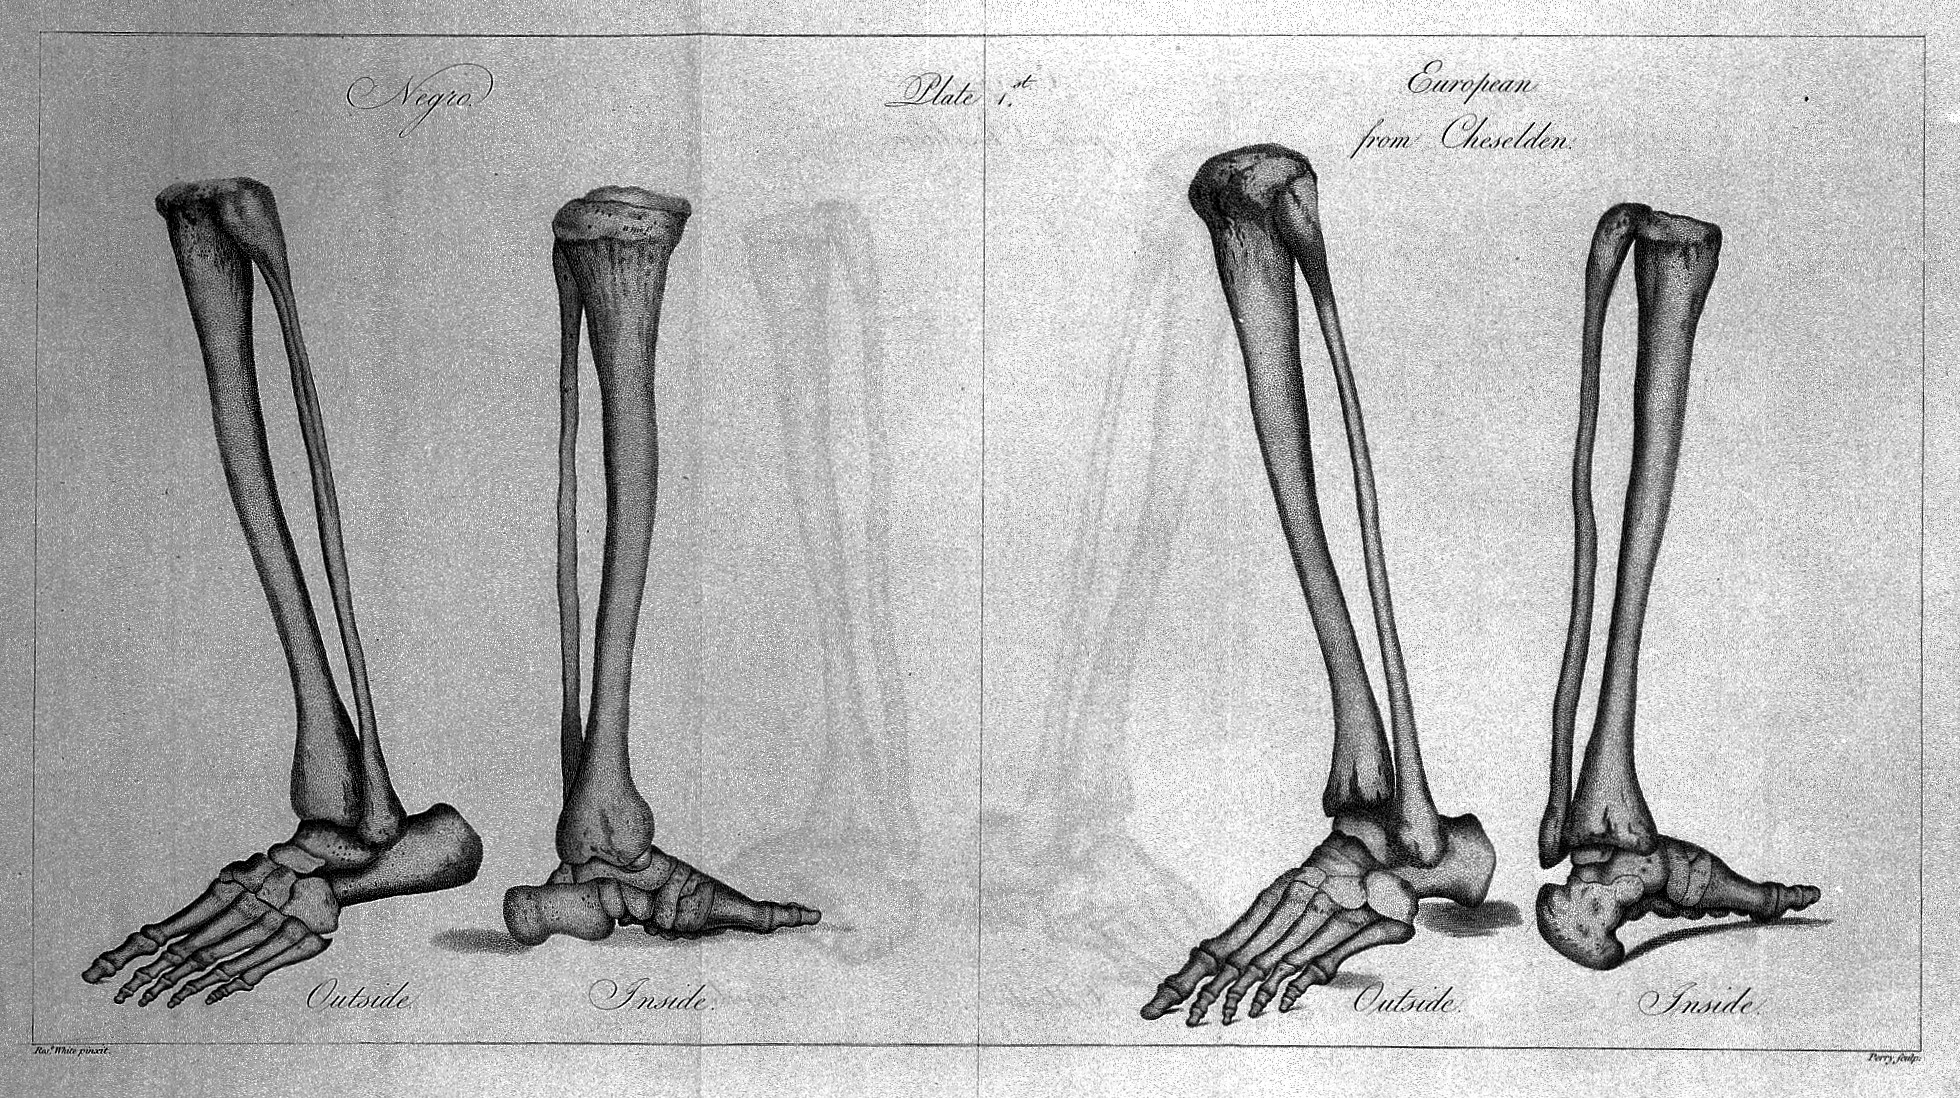 Fileskeletal Anatomy Of Lower Leg 1799 Wellcome L0030019g